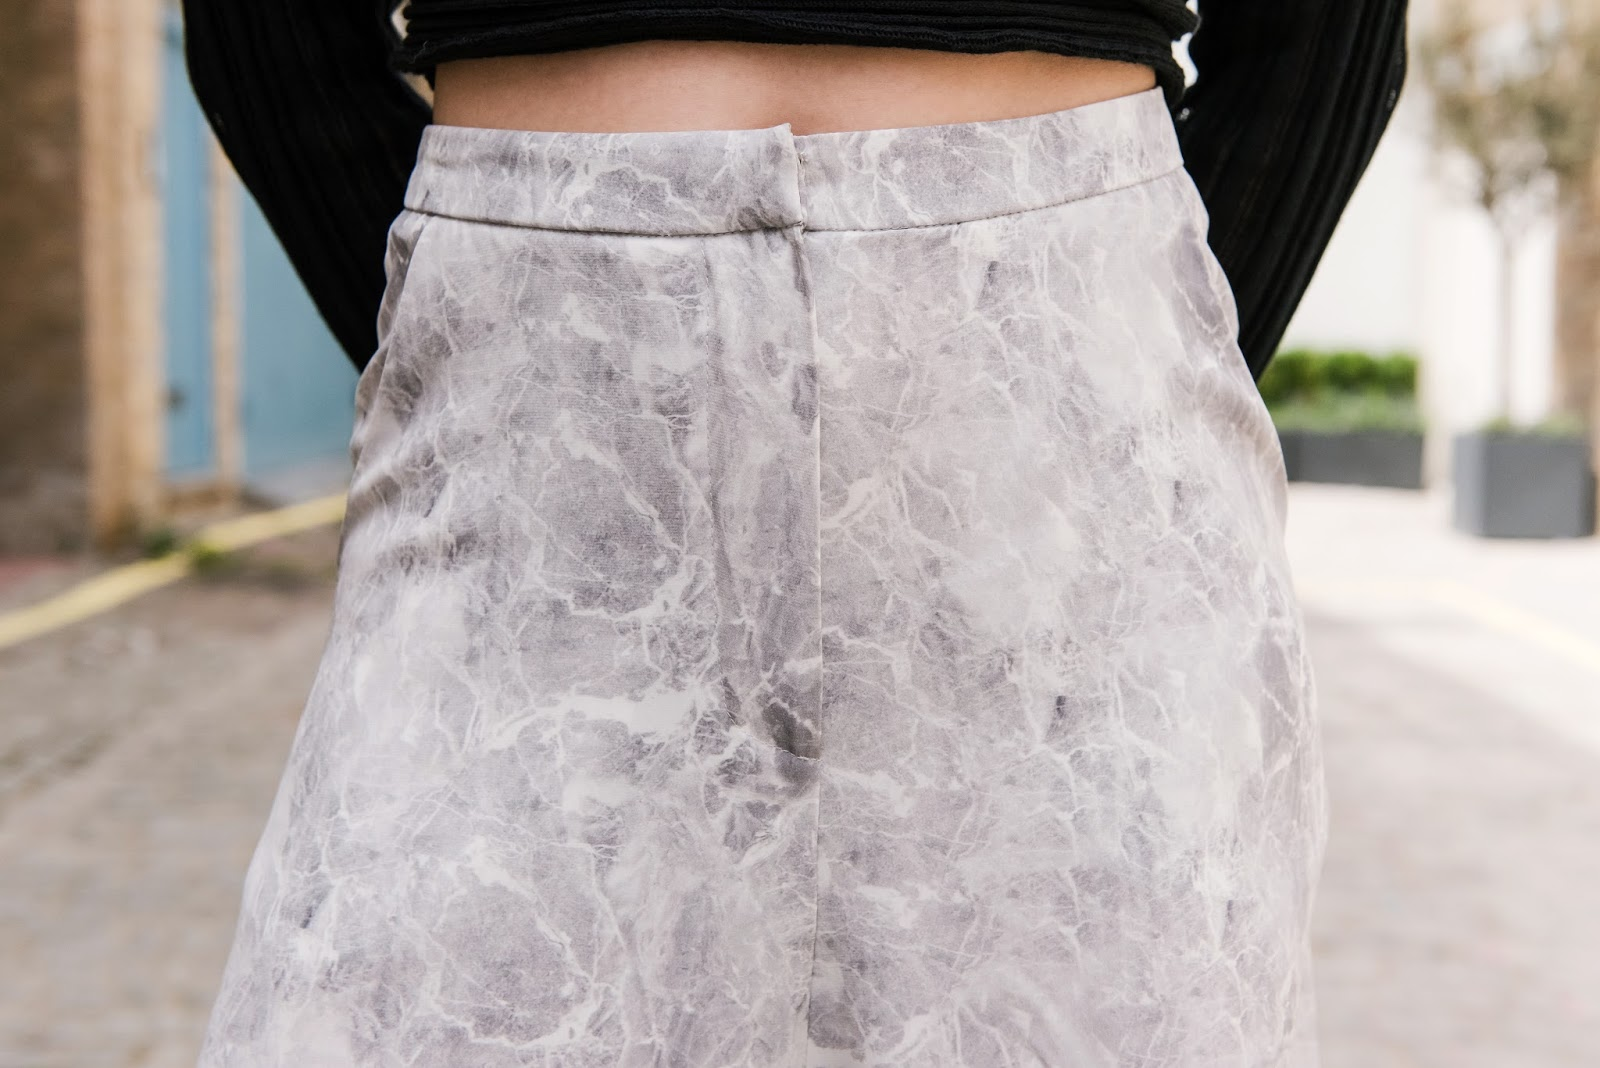 marble print, ioanna kourbela, v society, silk culottes, greek fashion, greek designers, virginia tzioti